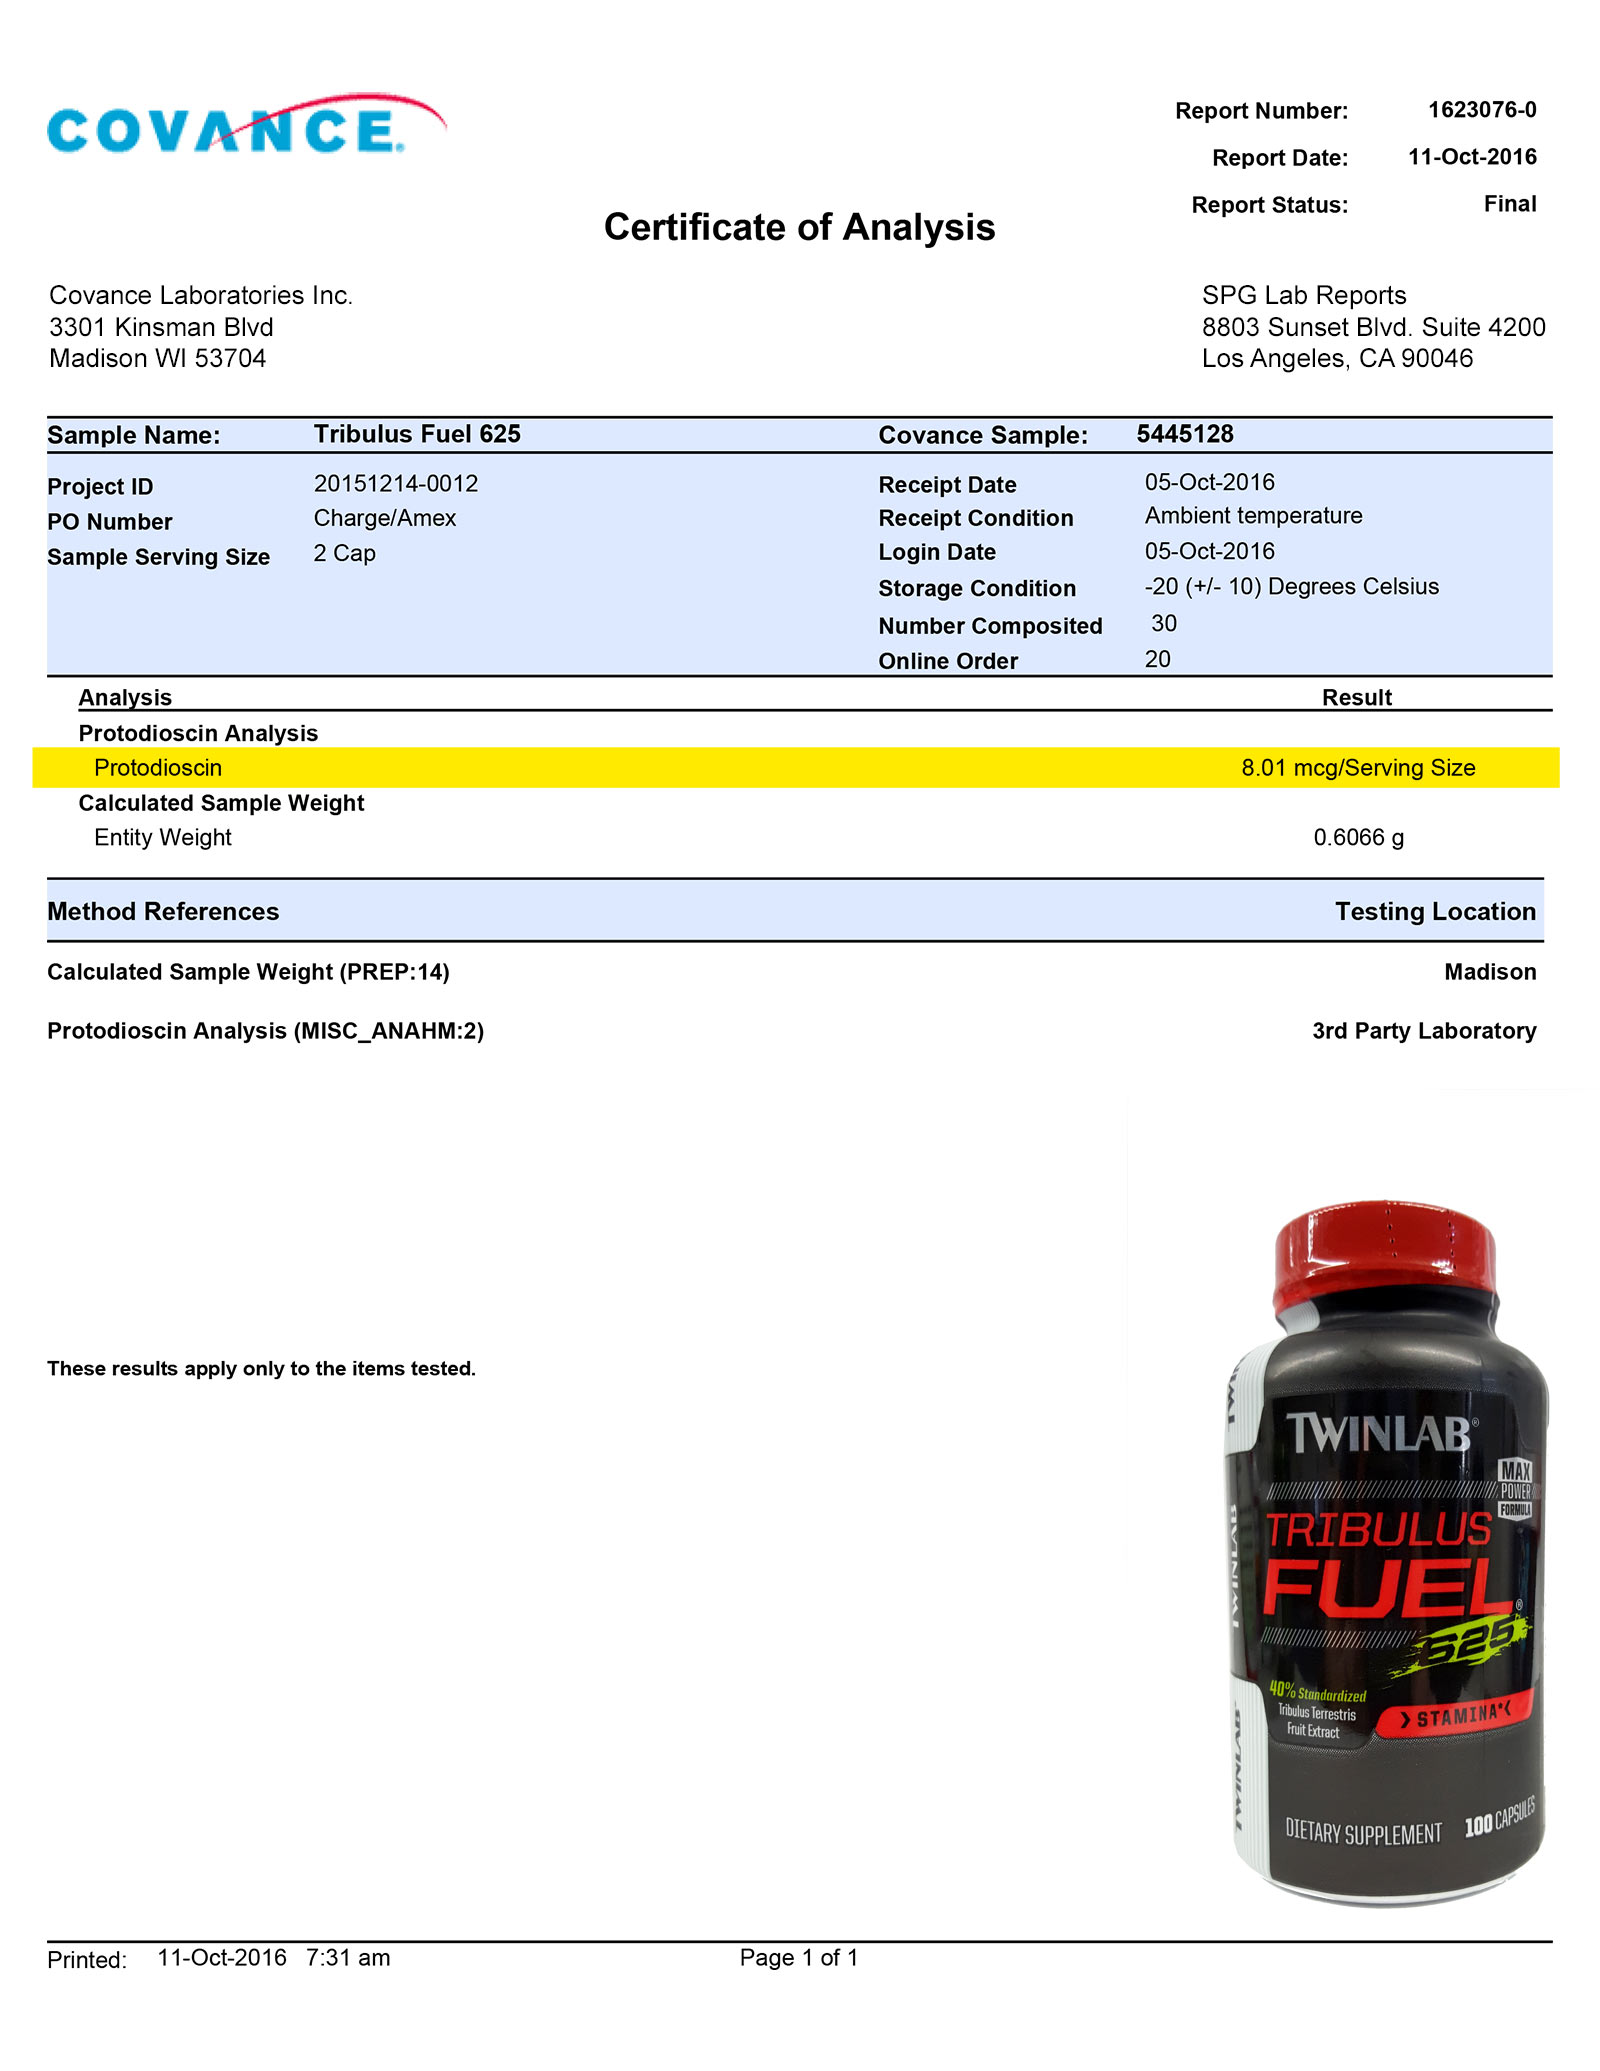 Lab Report - Tribulus Fuel